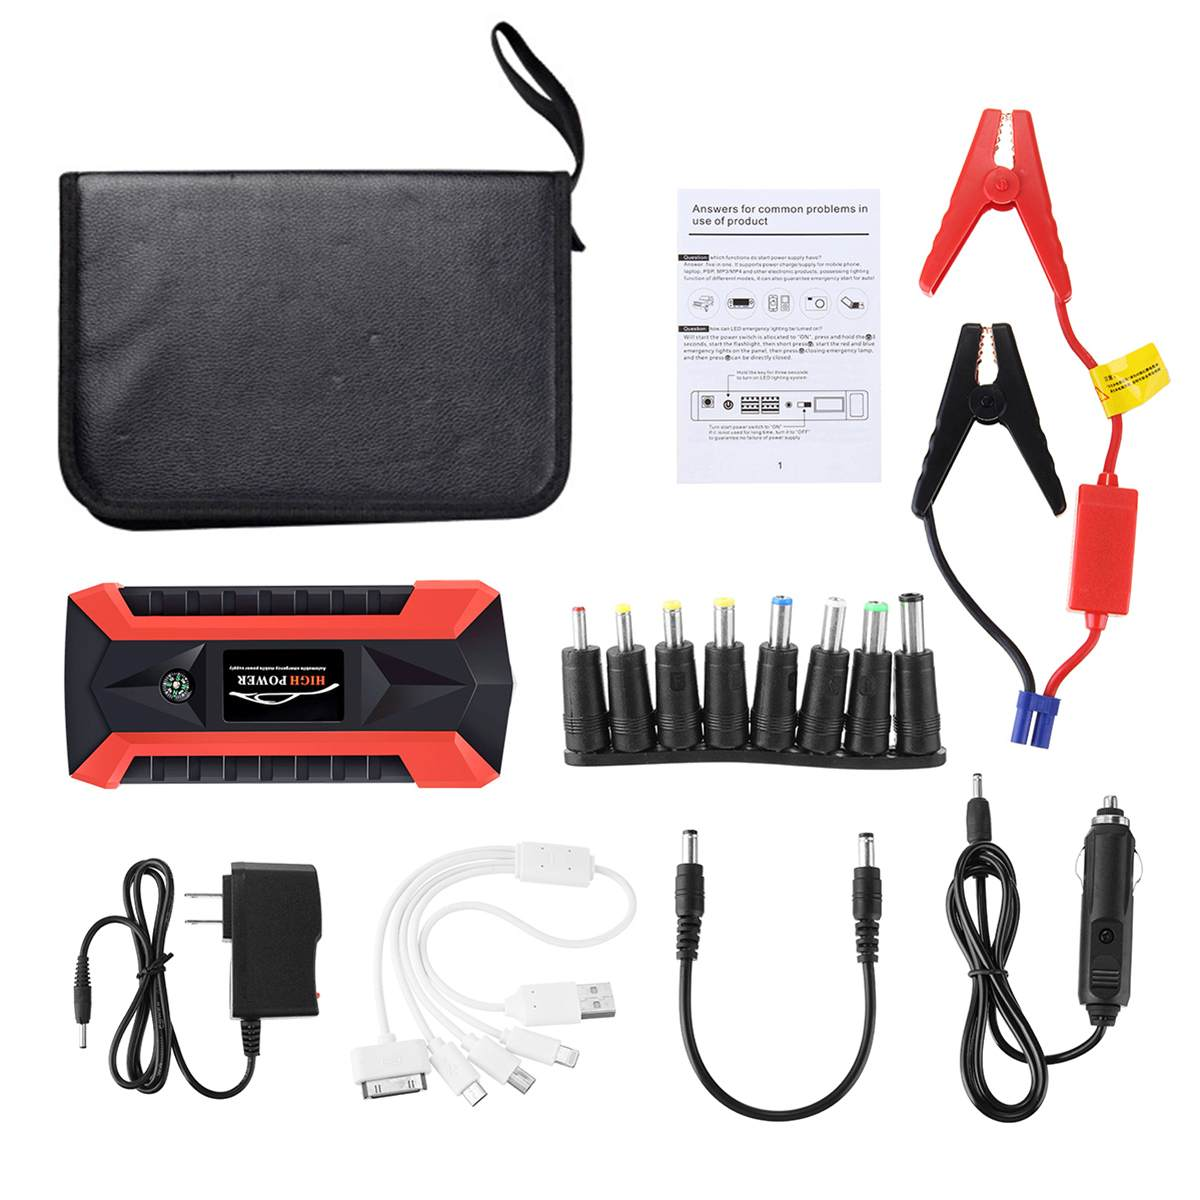 89800mAh 4USB Car Jump Starter Multifunction Emergency Charger Battery Power Bank Pack Booster 12V Starting Device Waterproof new 12v 89800mah portable 4usb car jump starter power bank tool kit booster charger battery automobile emergency led light